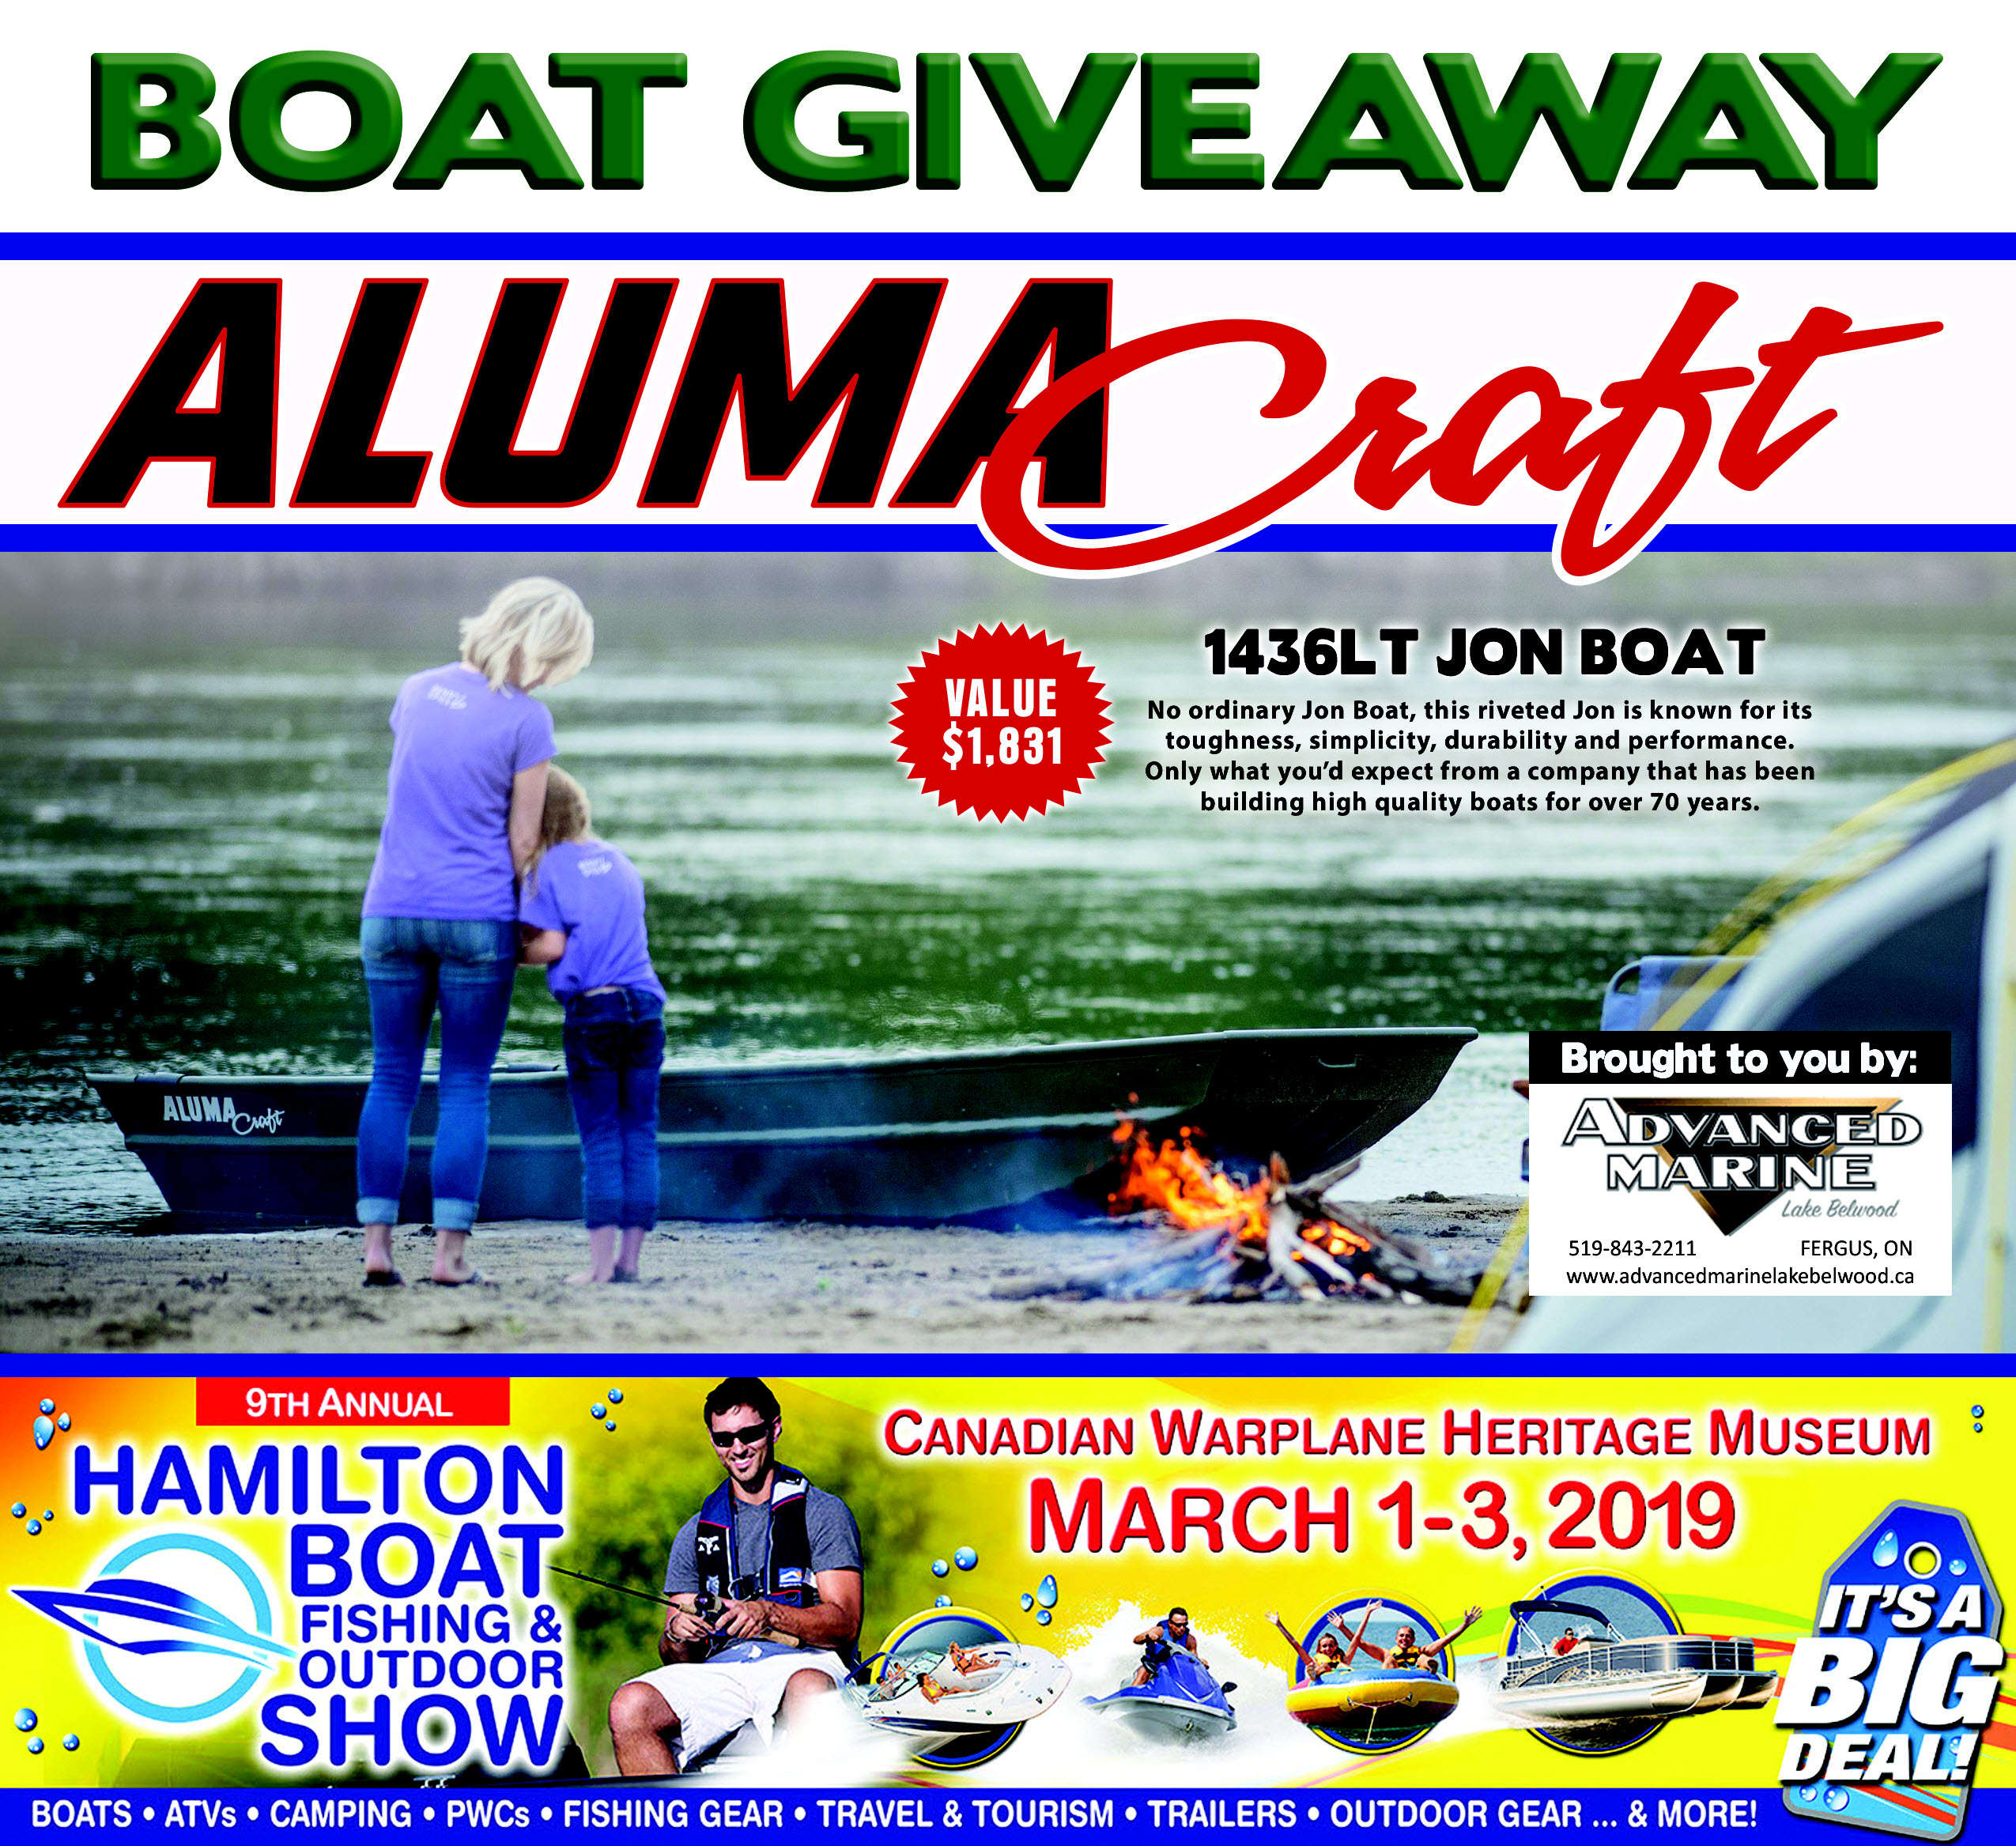 BOAT GIVEAWAY HAMILTONSHOW2019contestrevised1